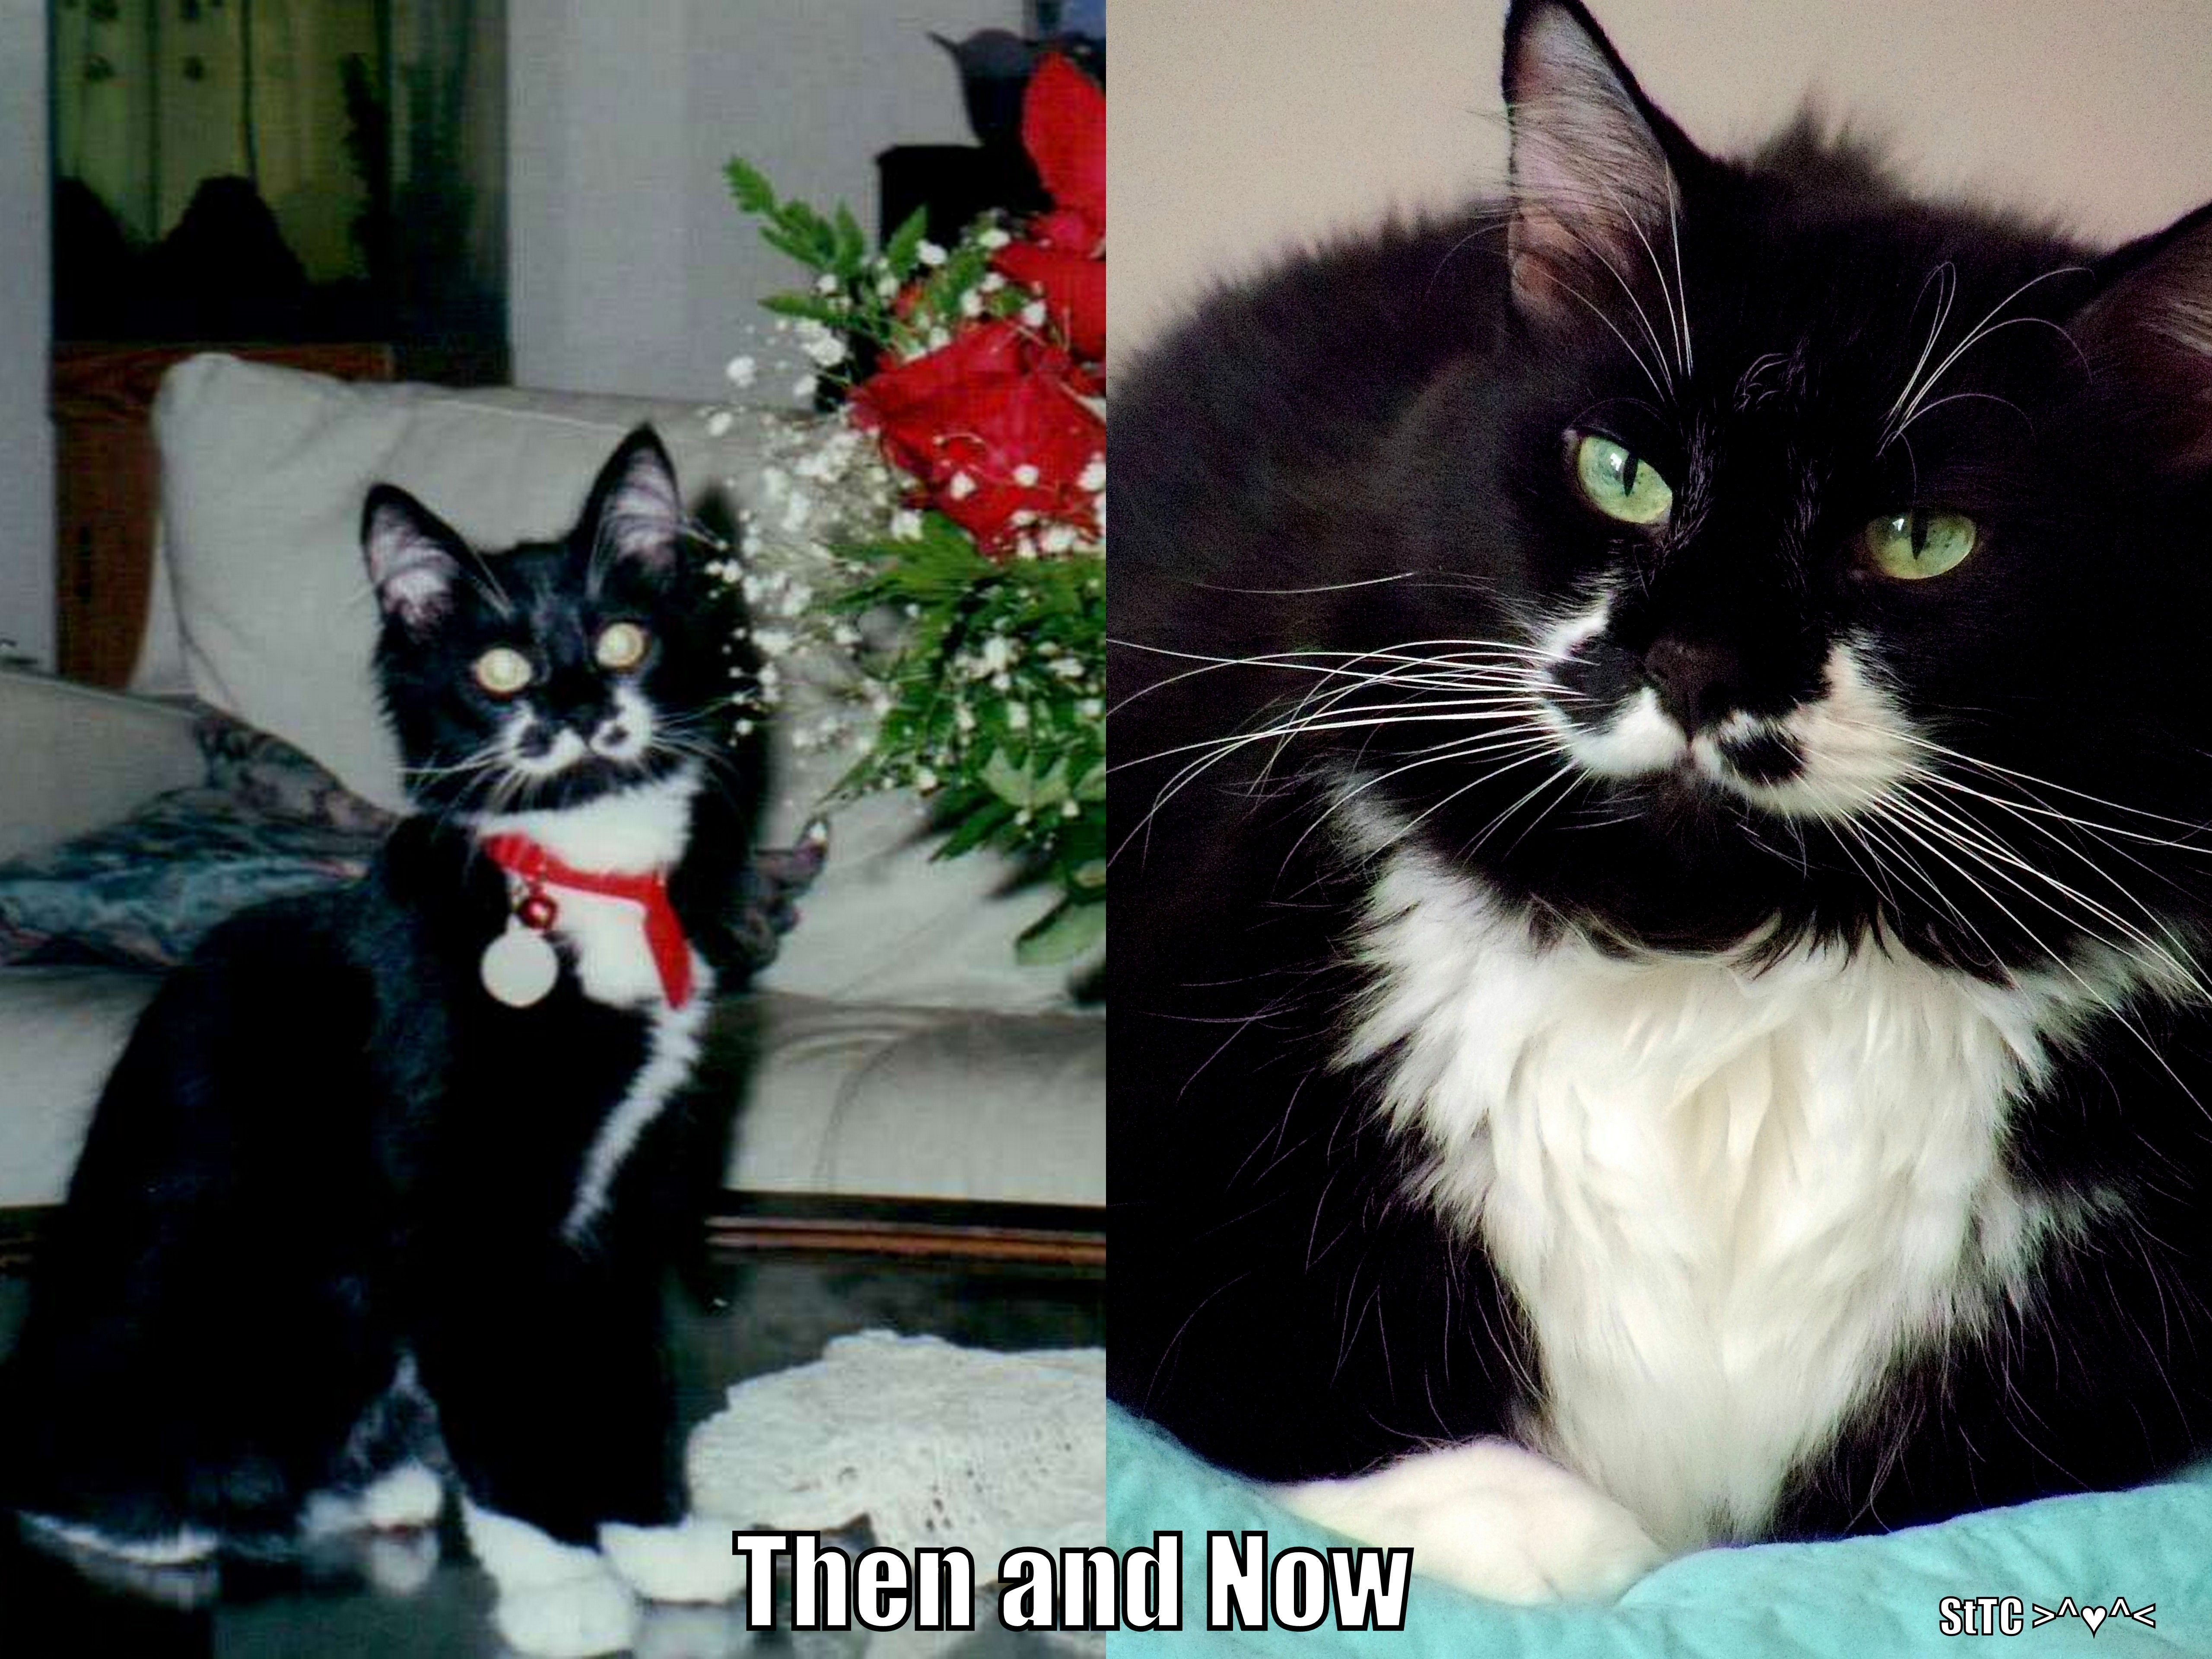 Sylvester the Tuxedo Cat on Facebook as a kitten and at 13.